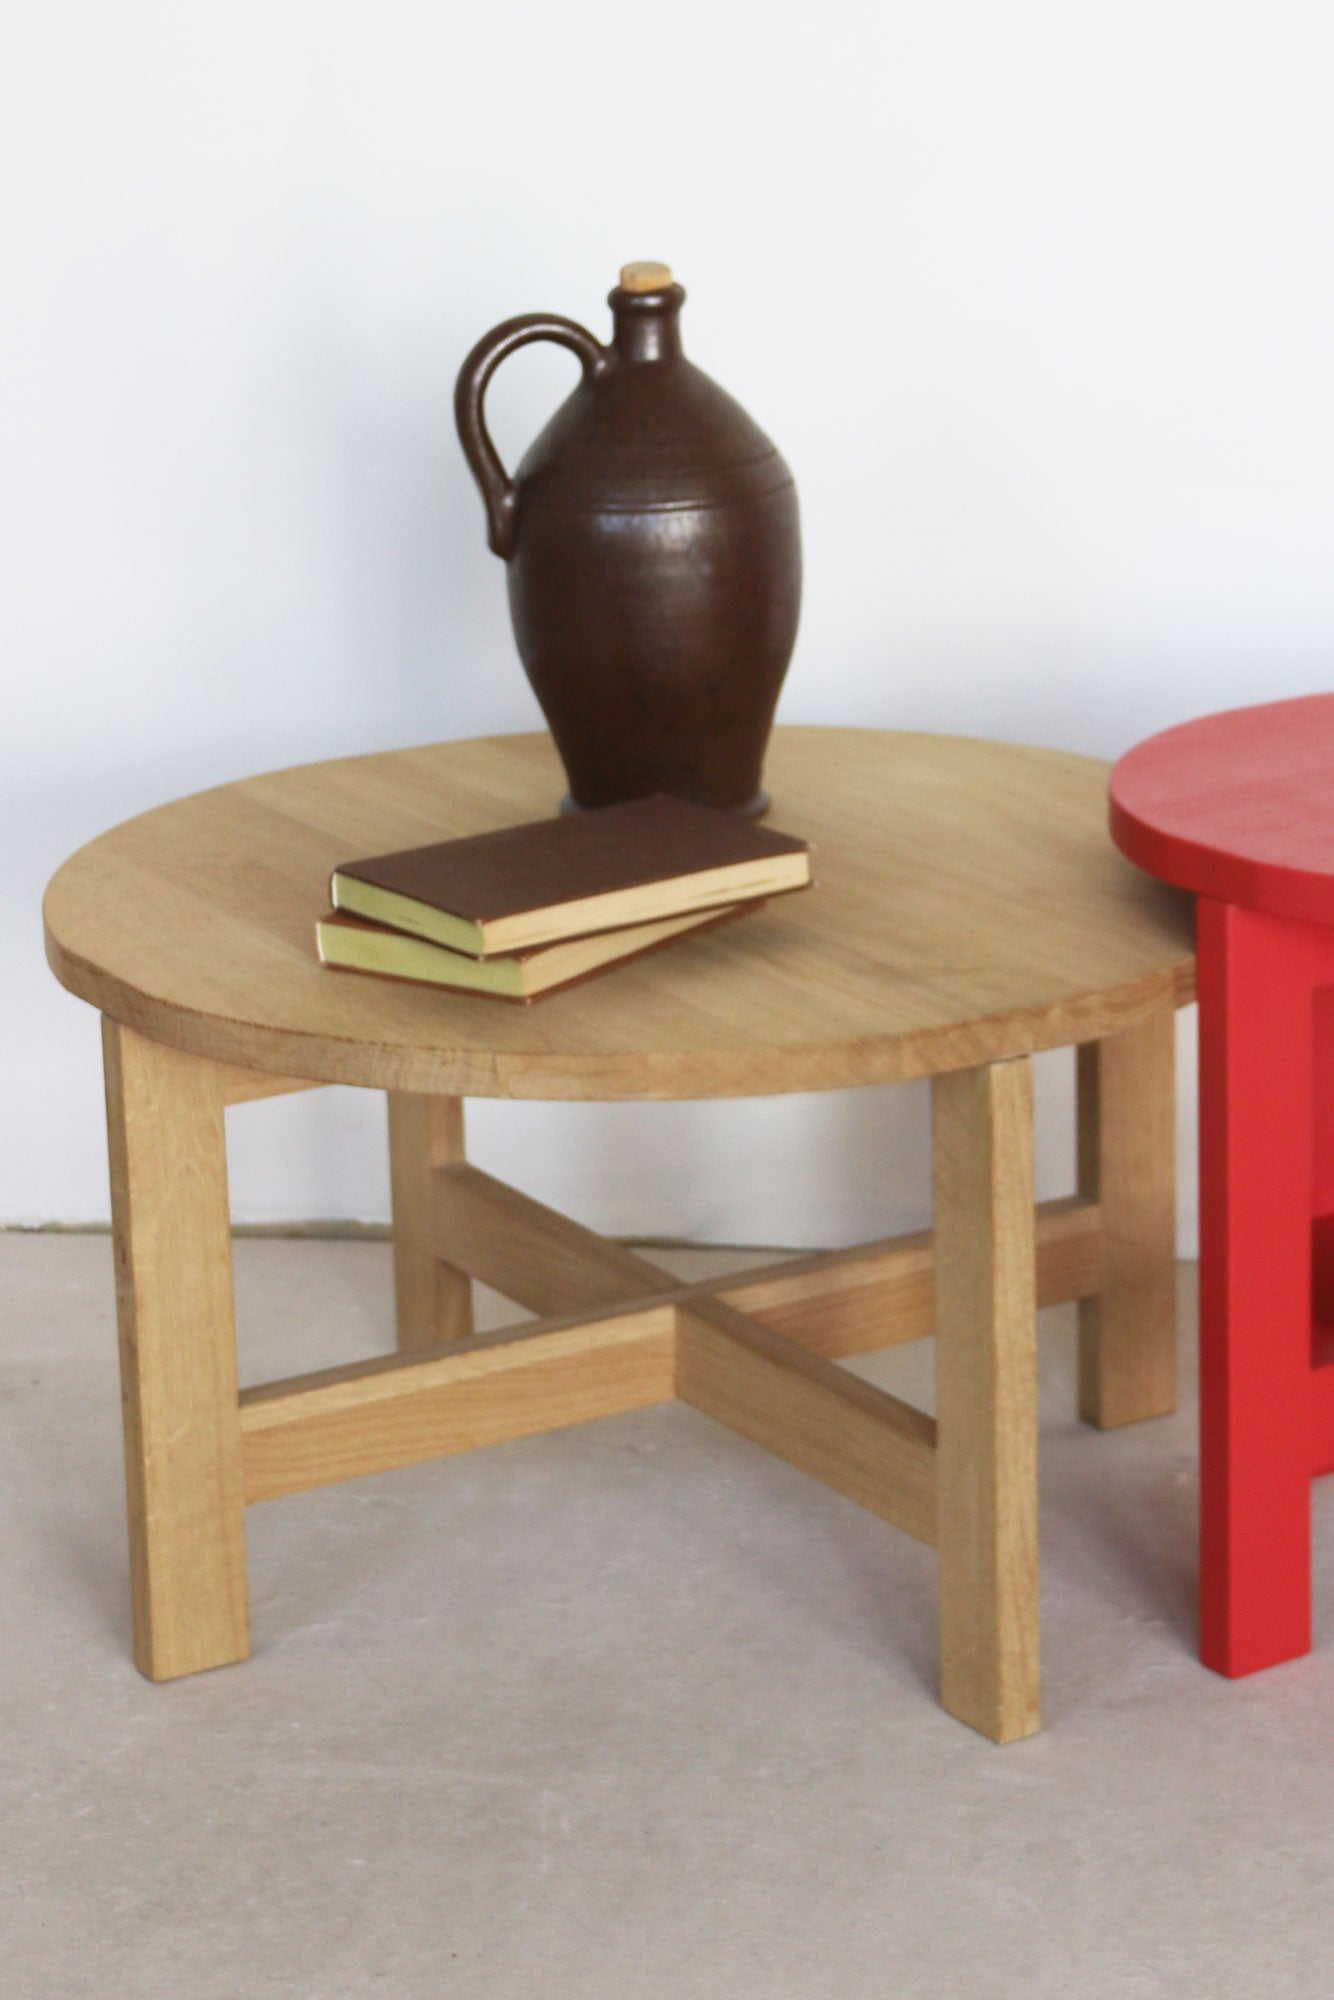 Coffeetable Erde - Styling